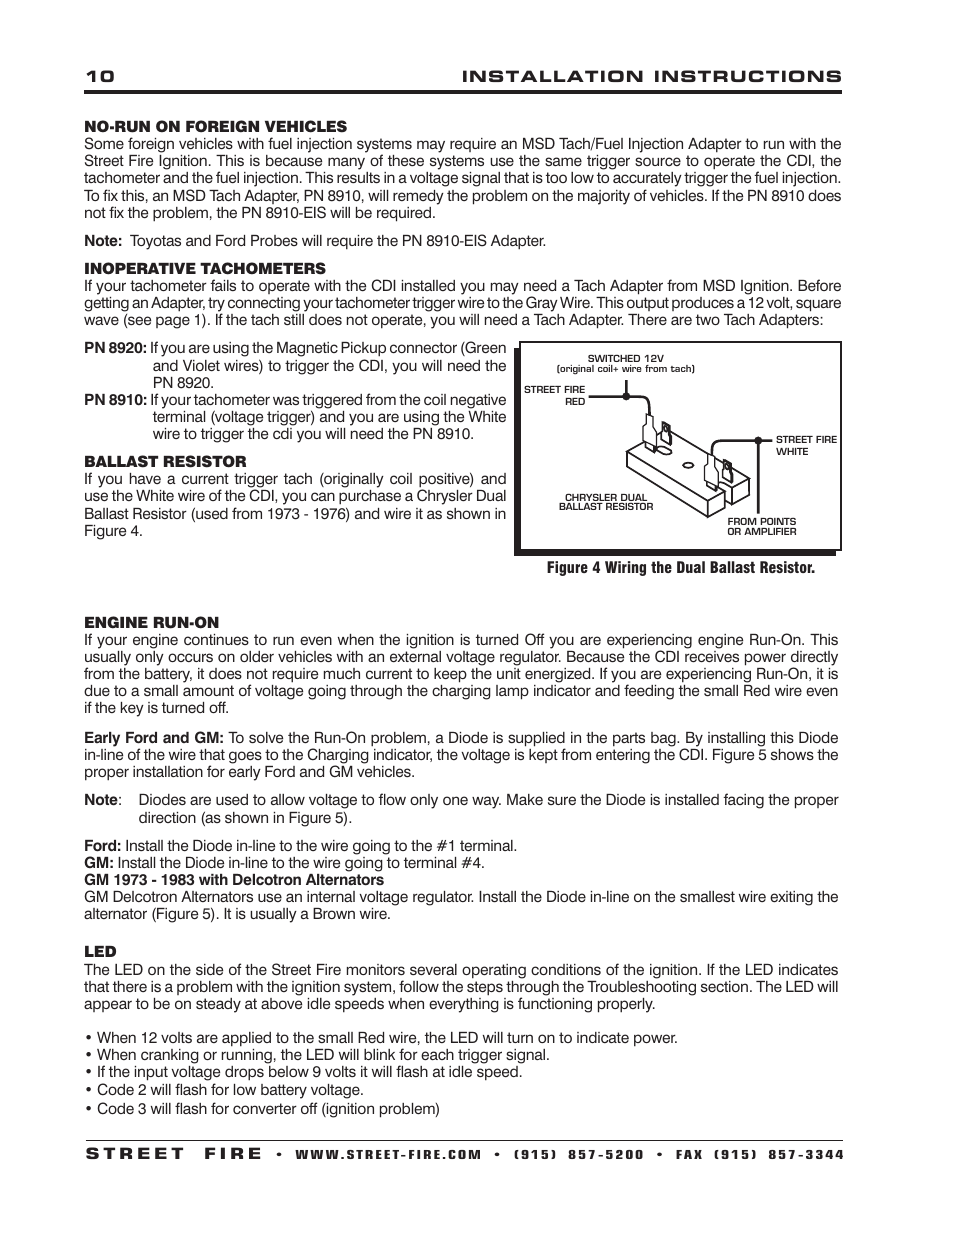 medium resolution of msd 5520 street fire ignition control installation user manual page 10 12